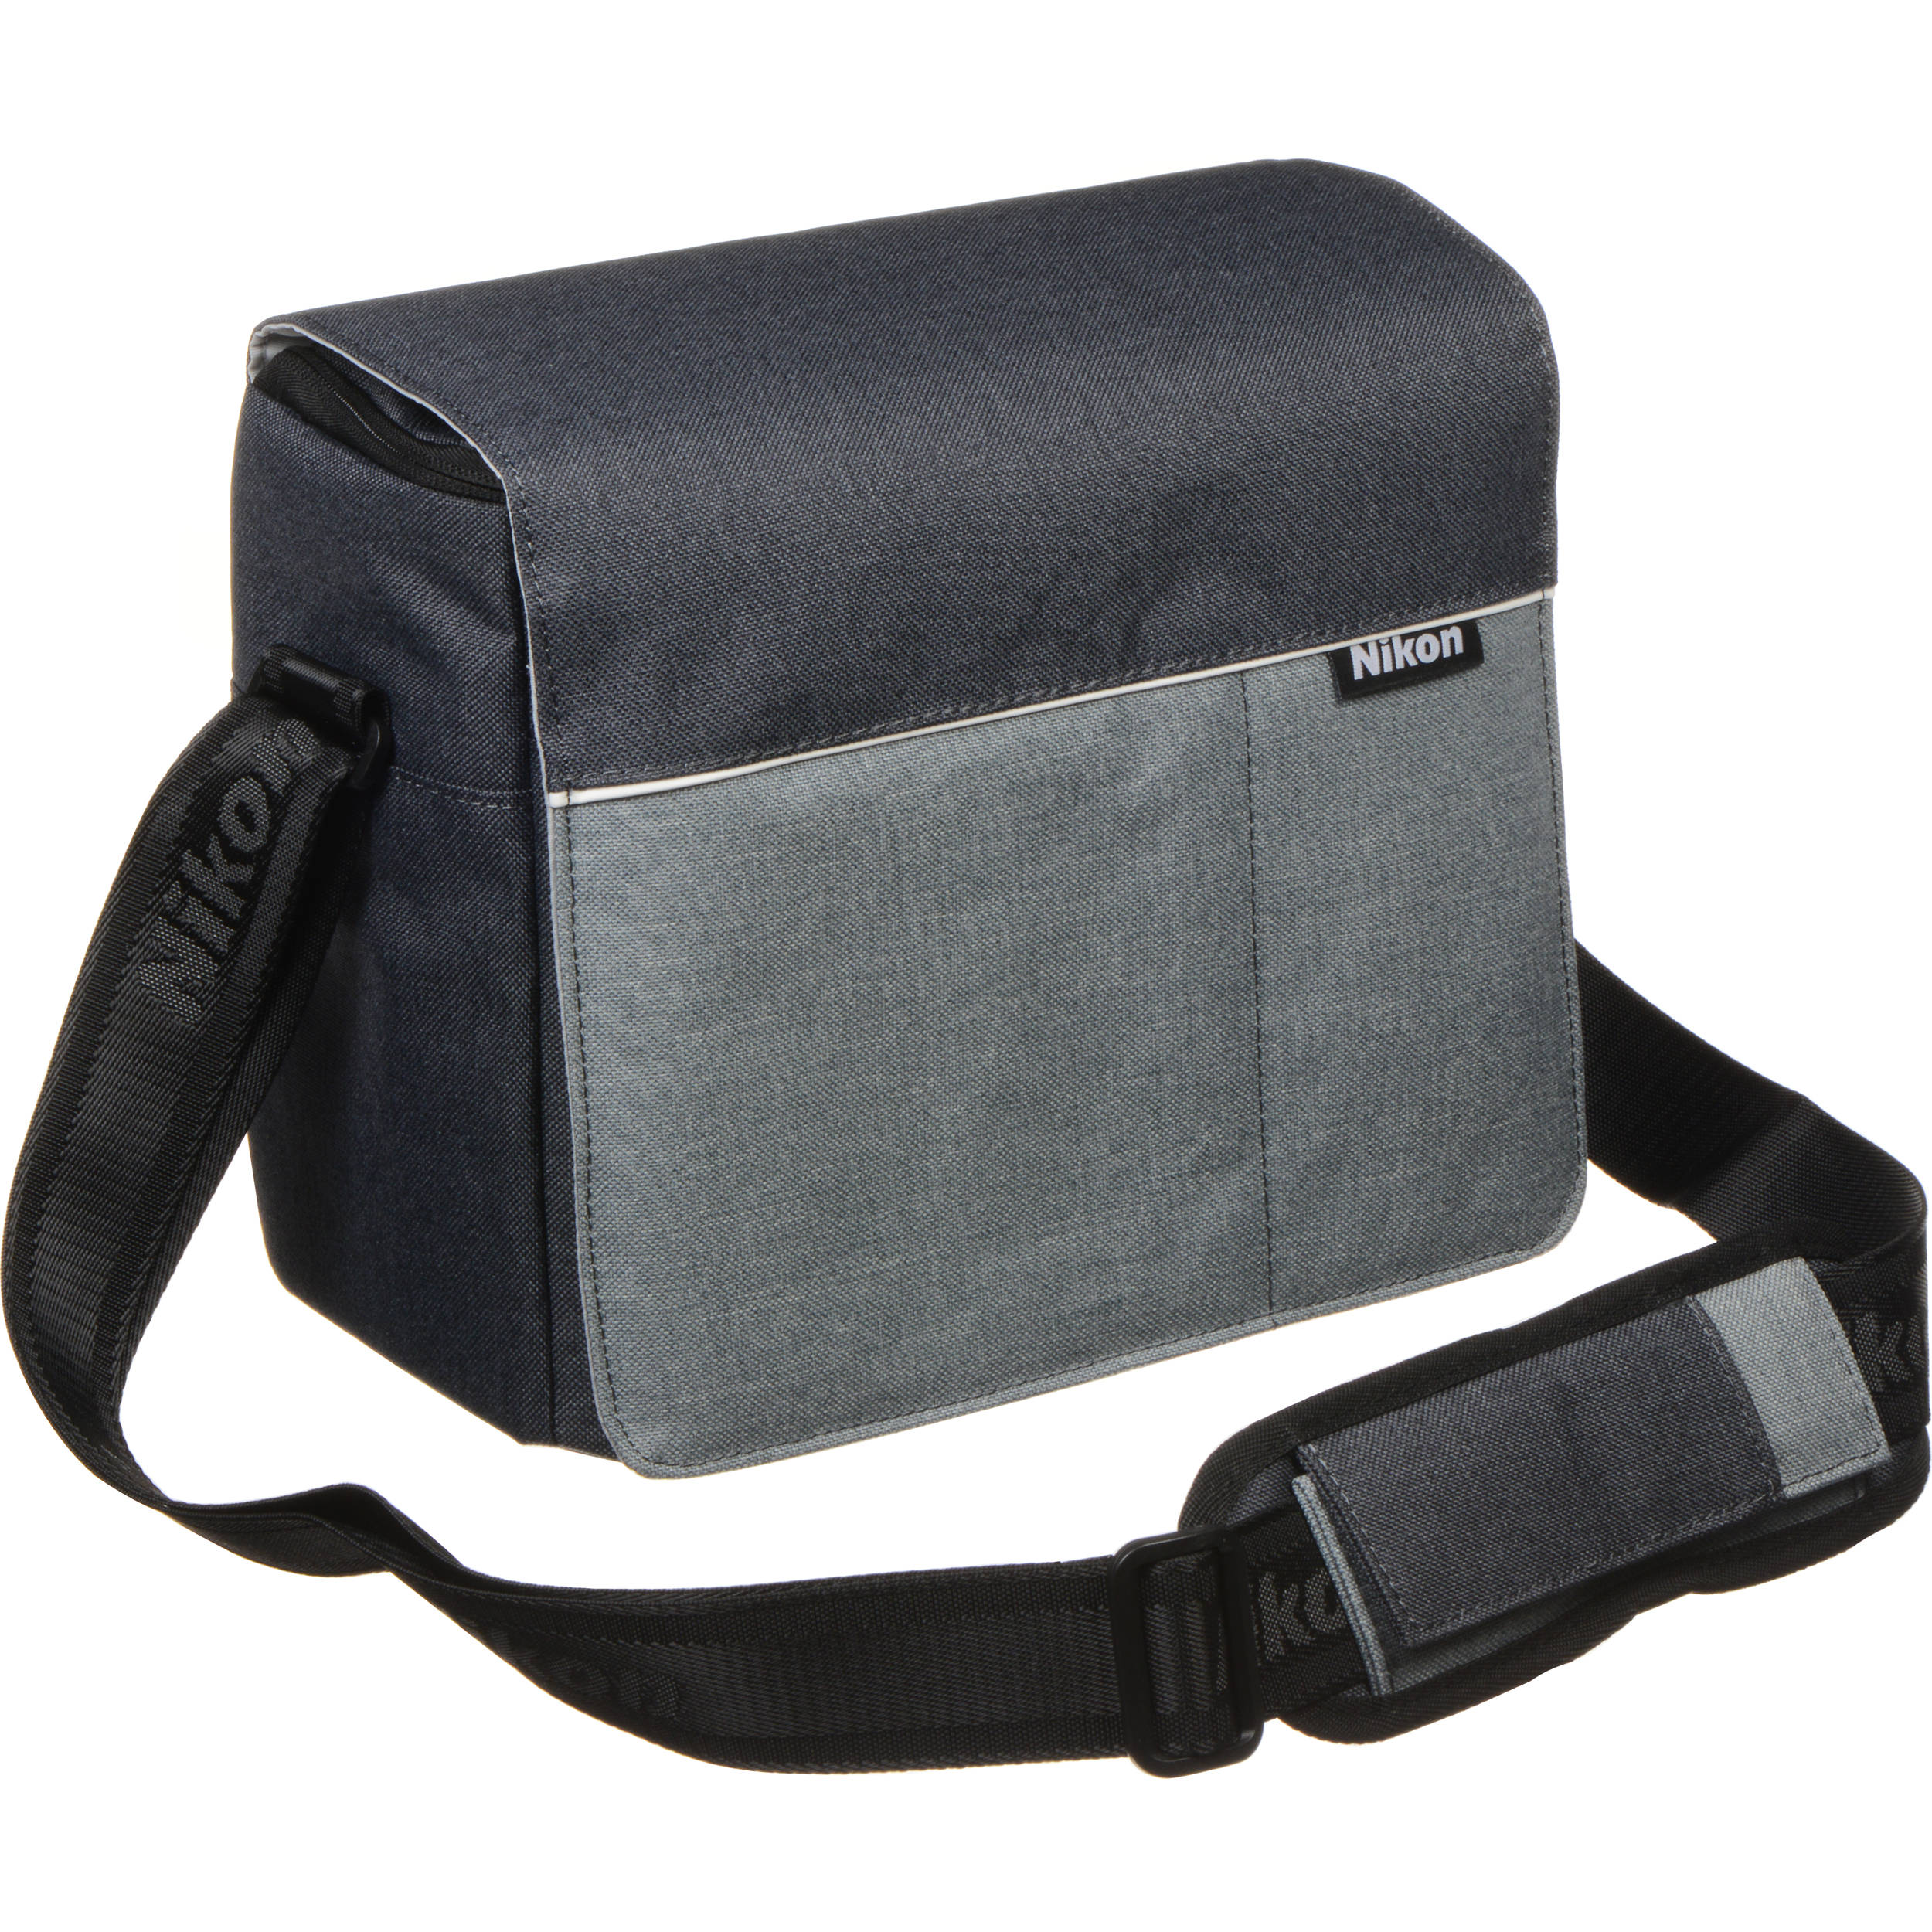 Nikon Dslr Camera Bag Gray